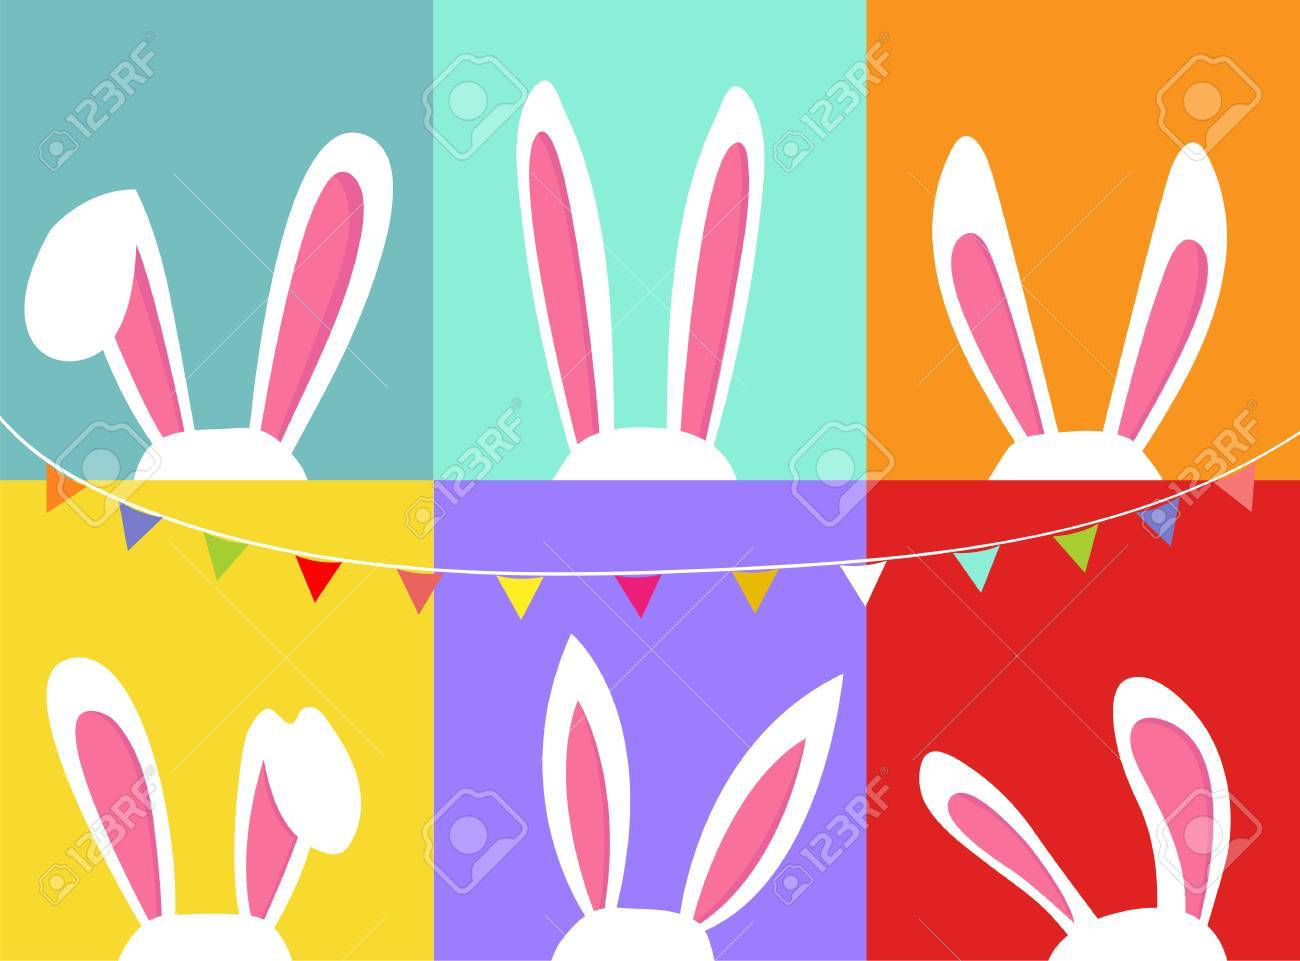 Set of easter bunny ears, with party flag bunting, colorful background - 61632690